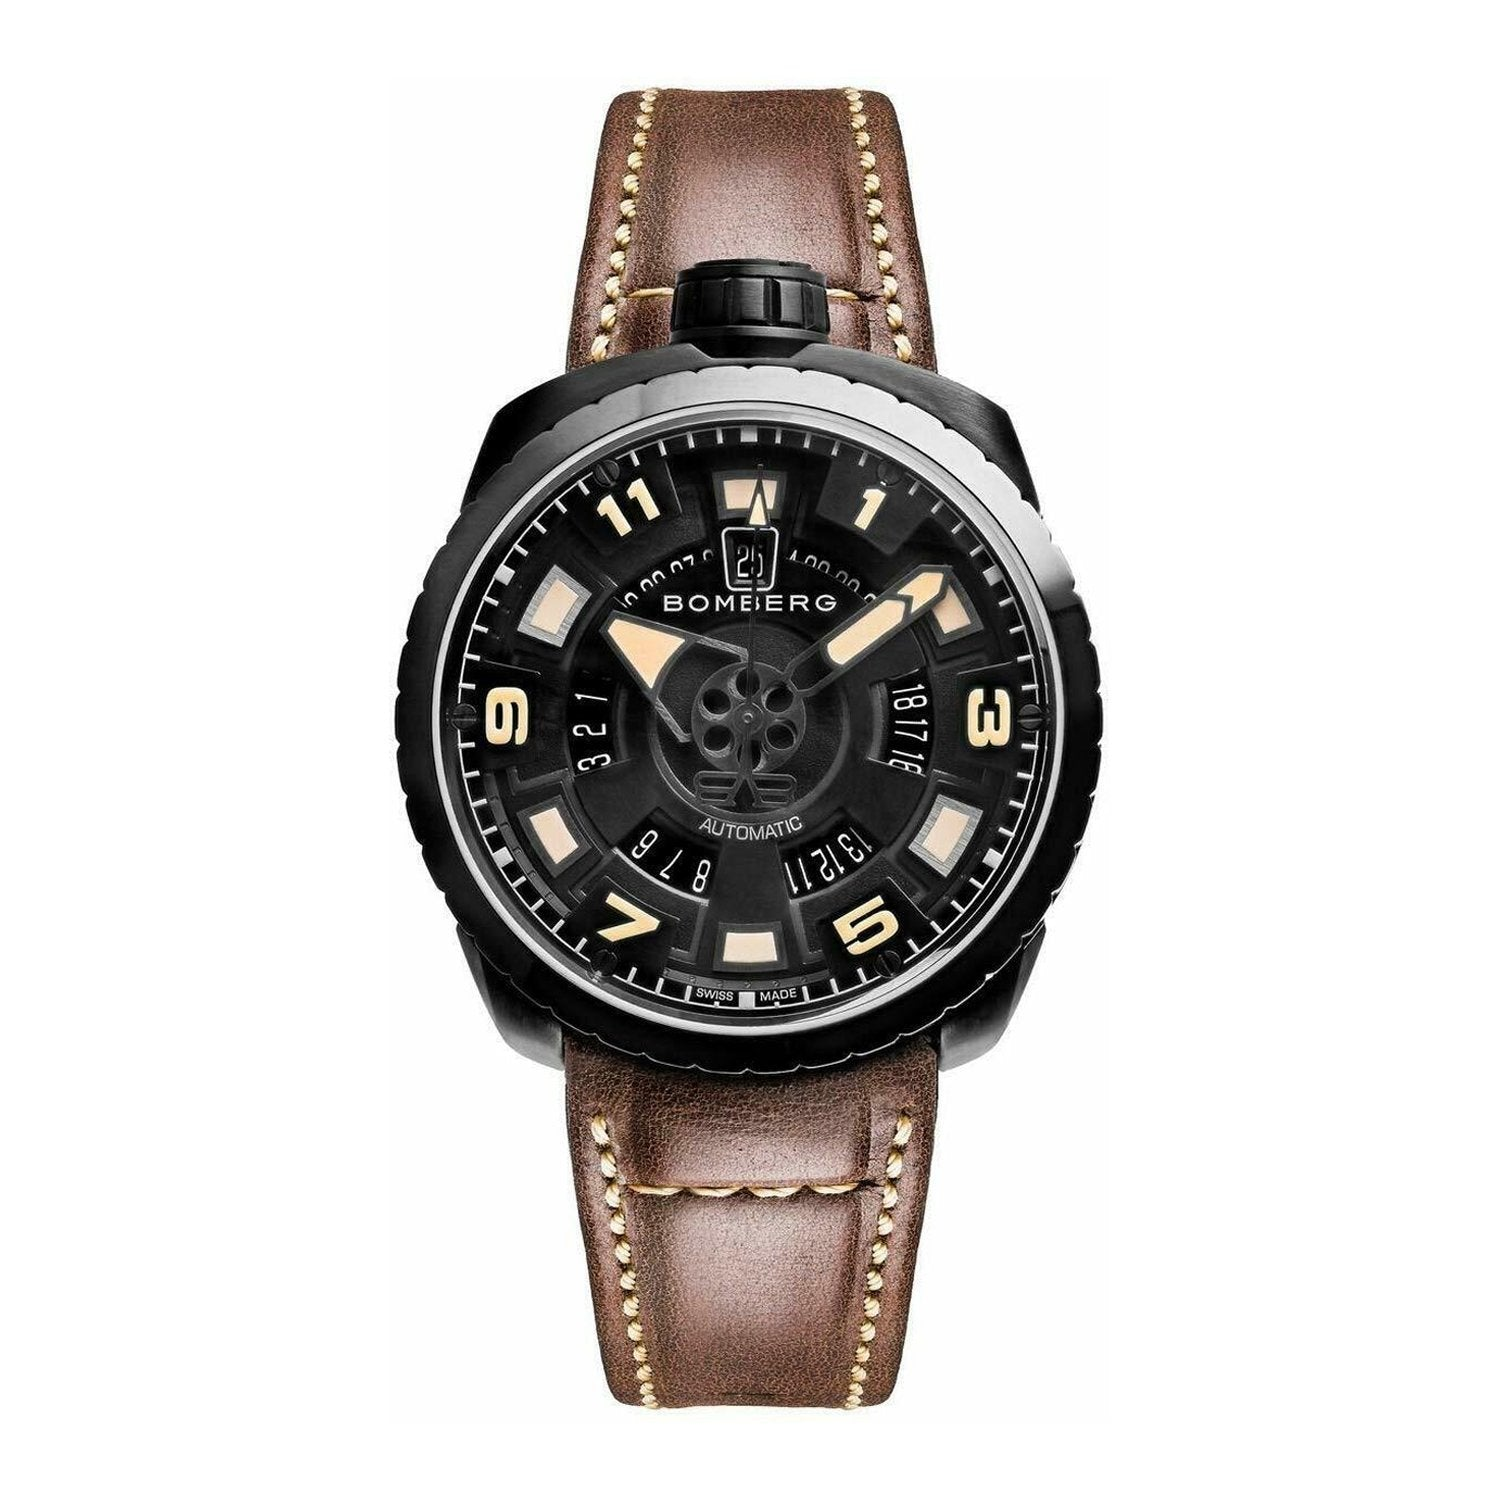 Bomberg BOLT-68 Watch Black PVD LIMITED EDTION